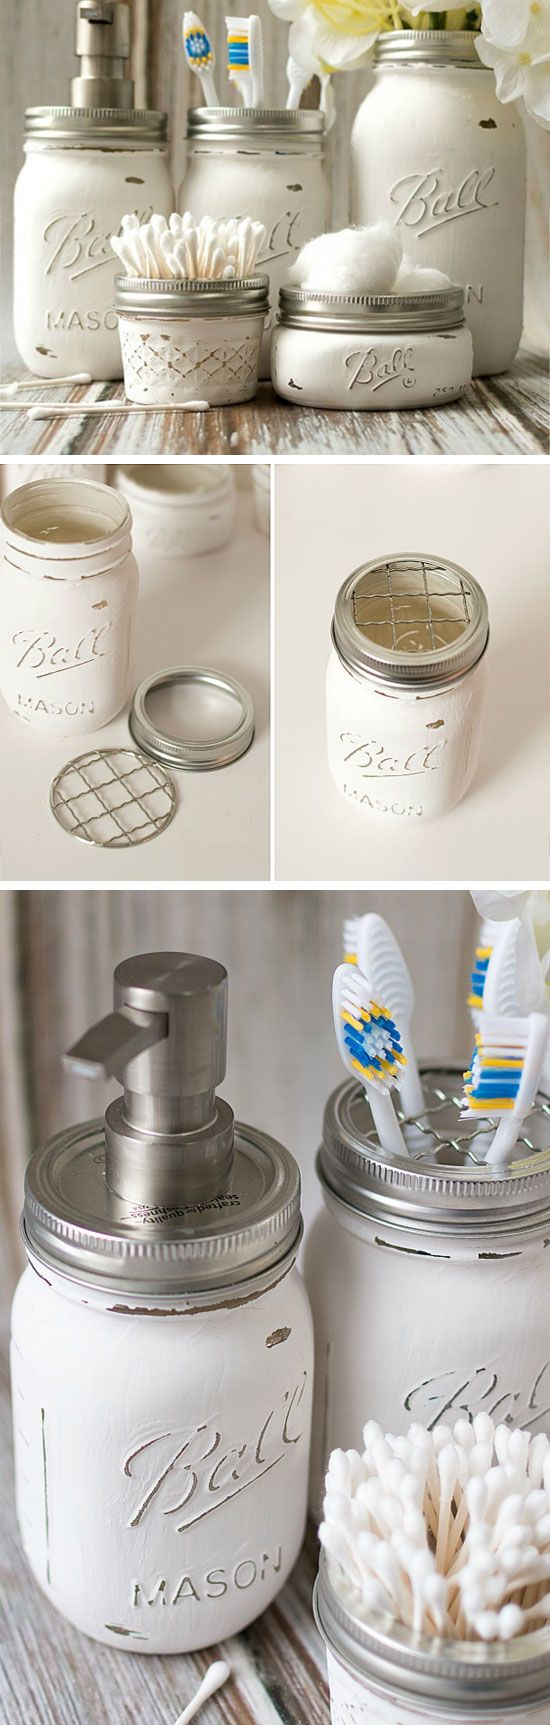 20 diy bathroom storage ideas for small spaces jars